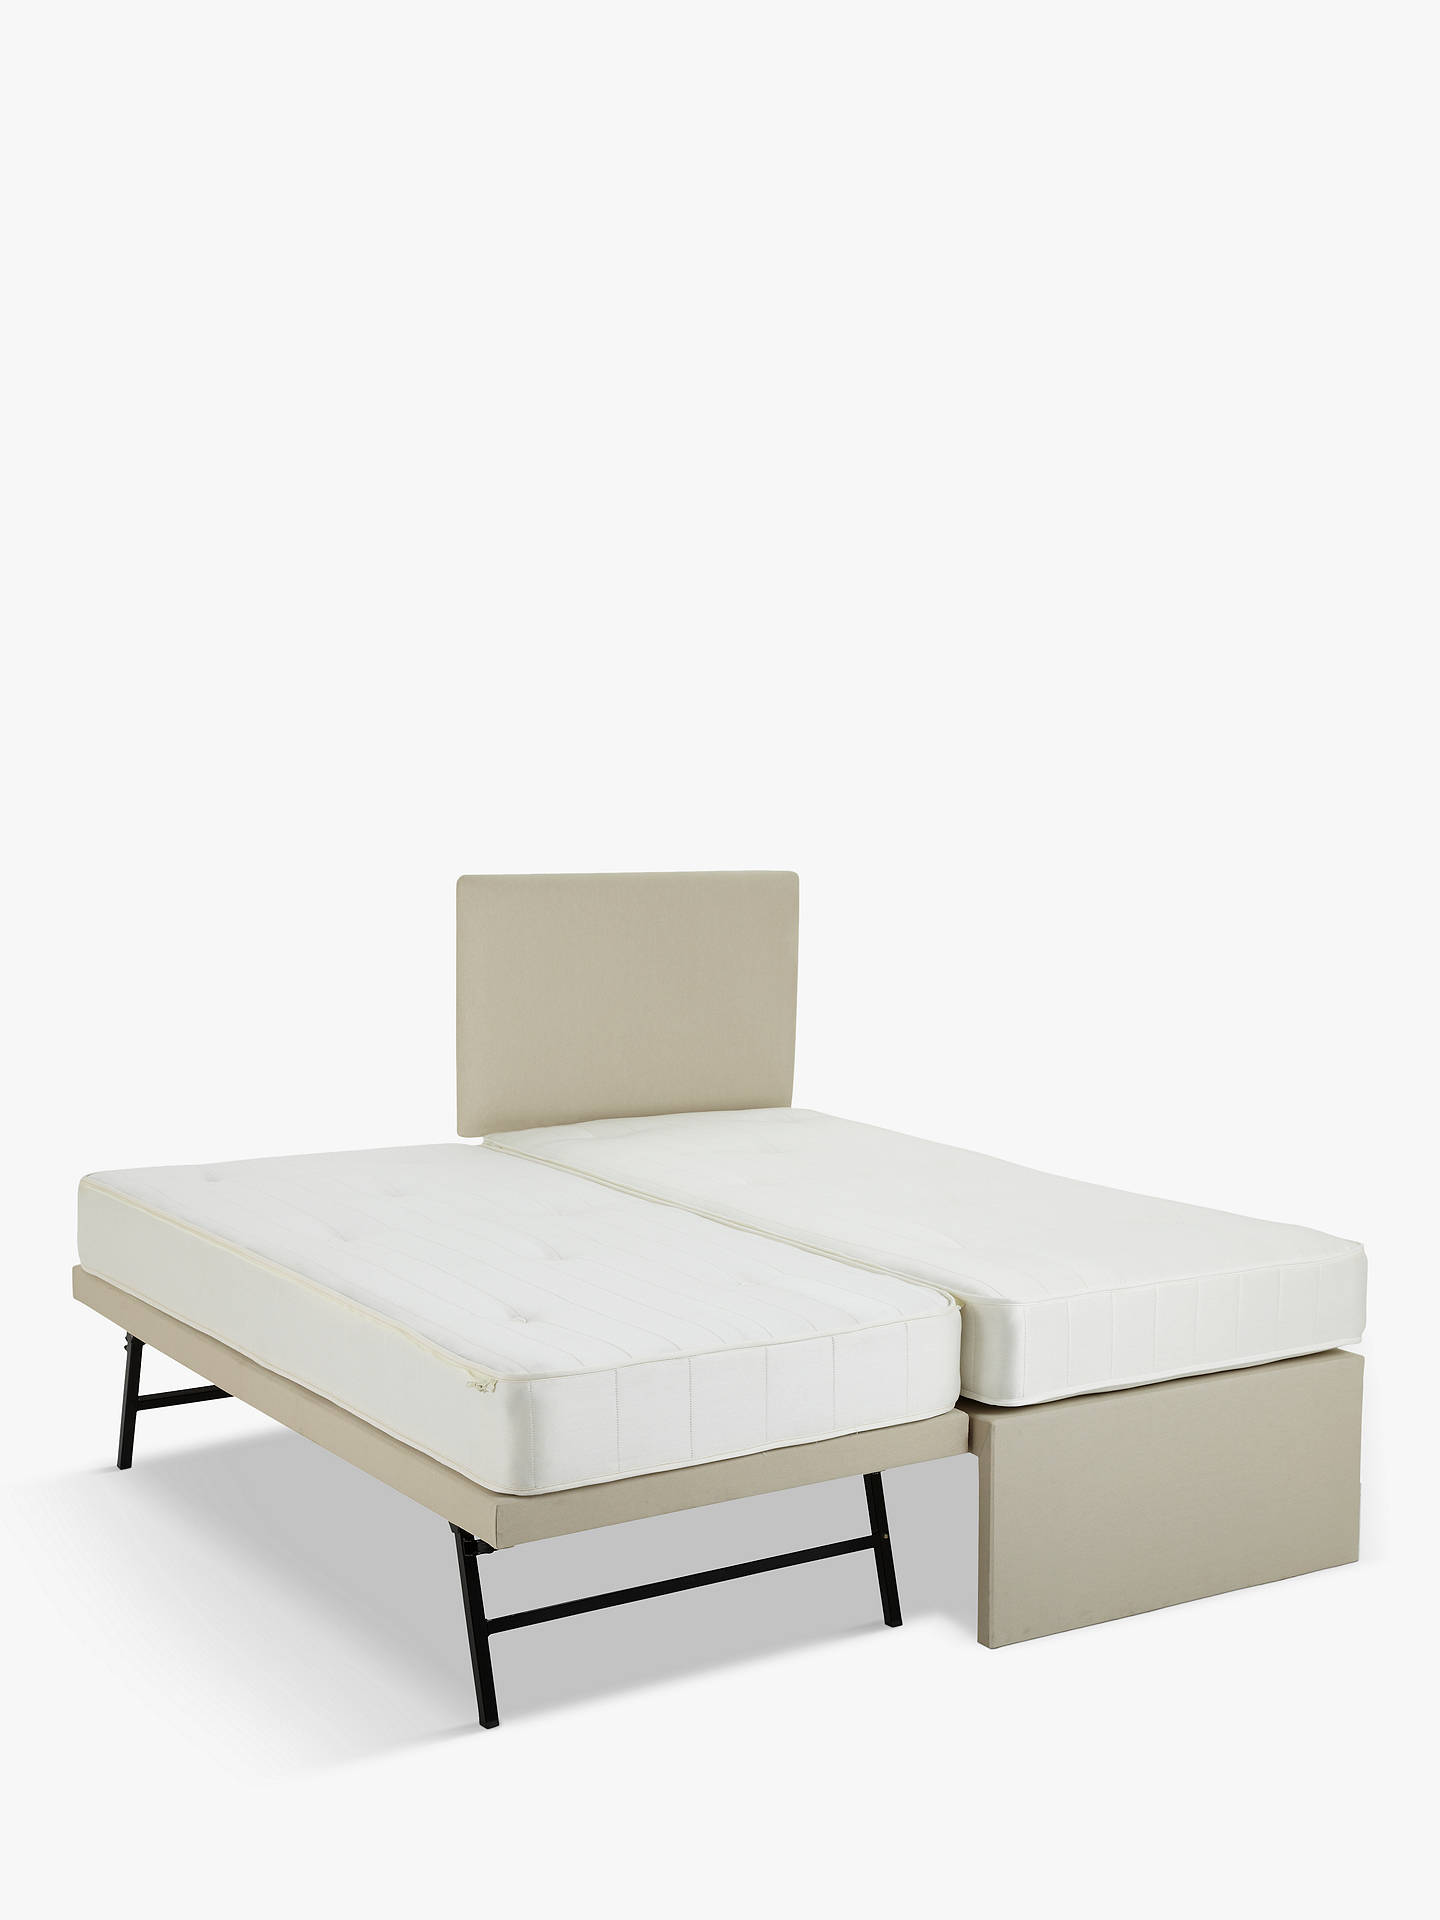 BuyJohn Lewis & Partners Savoy Two Pocket Spring Trundle Guest Bed, Canvas Pebble, Single Online at johnlewis.com